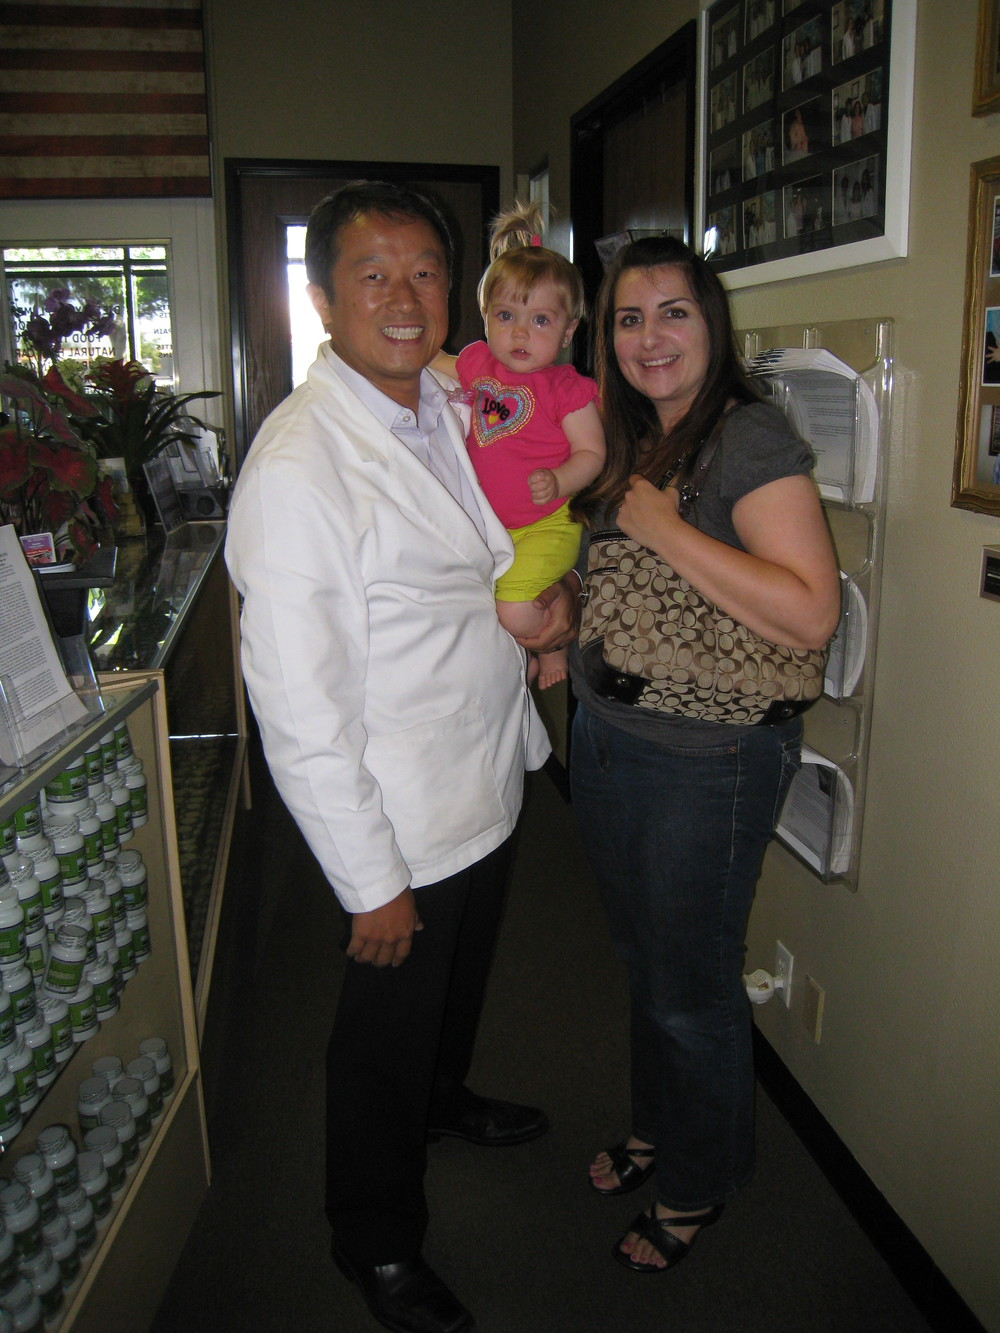 I began going to Dr. Kevin Huang when we decided to try acupuncture after reading his testimonials in 2011. I am glad to say that we were fortunate enough to welcome our beautiful daughter Brynn September of 2012. It has been a long journey and we are going to attempt to give Brynn a sibling. There is no doubt that I will surely continue going to Dr. Huang. I recommend anyone with fertility issues to see him before fertility treatments.  He has a great staff and the environment is one that is always warm and welcoming.